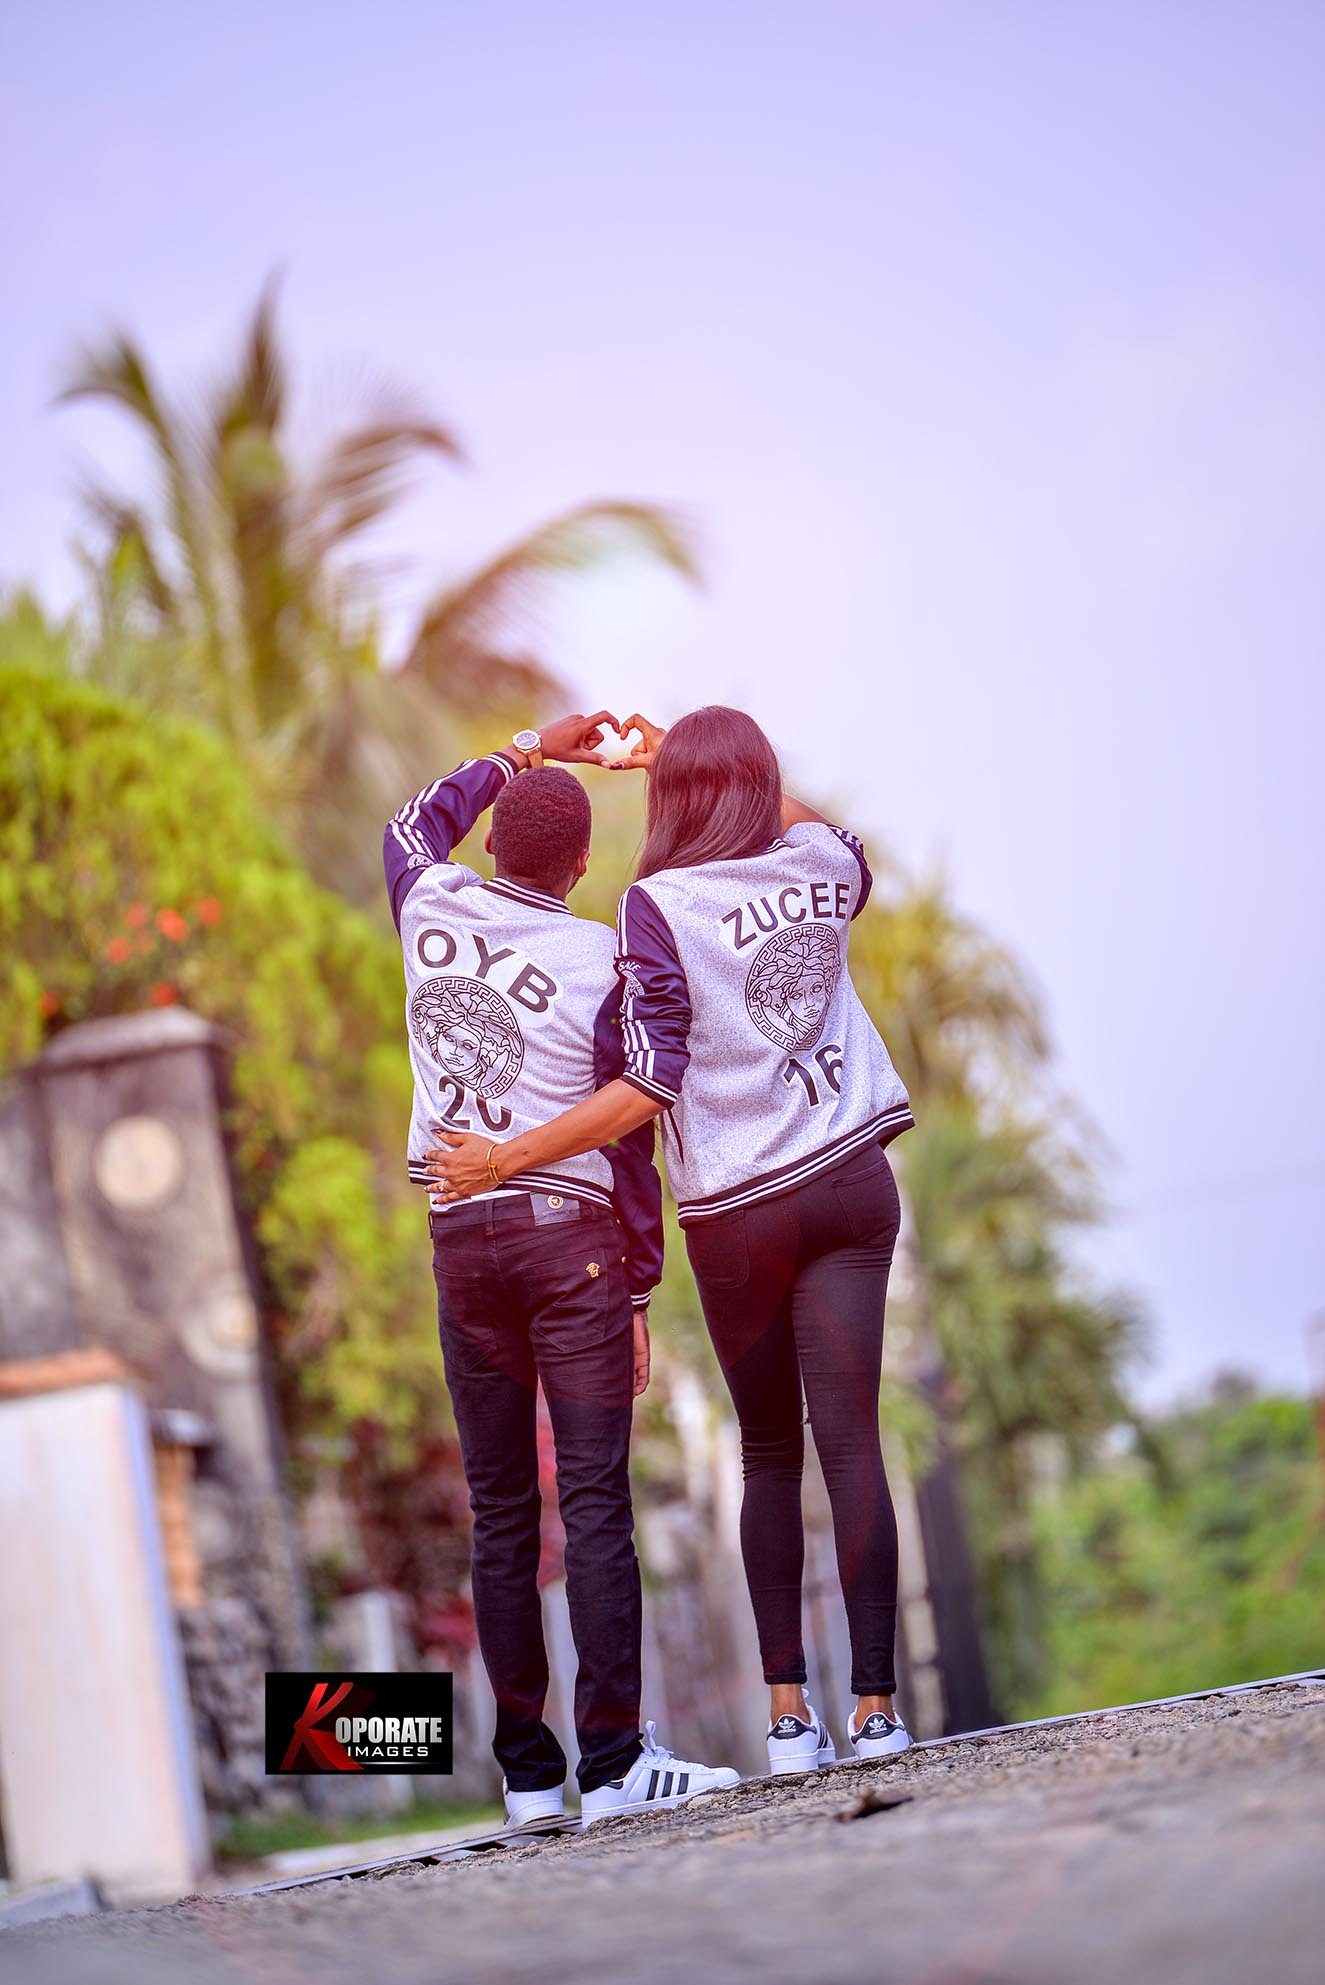 OYBZUCEE2016-PRE WEDDING wedding photos|Koporate Images|Photography & Video Coverage studio in Benin City|Professional Photographers for your events|Nigerian Wedding Photographer in Benin City|Edo Brides, benin brides